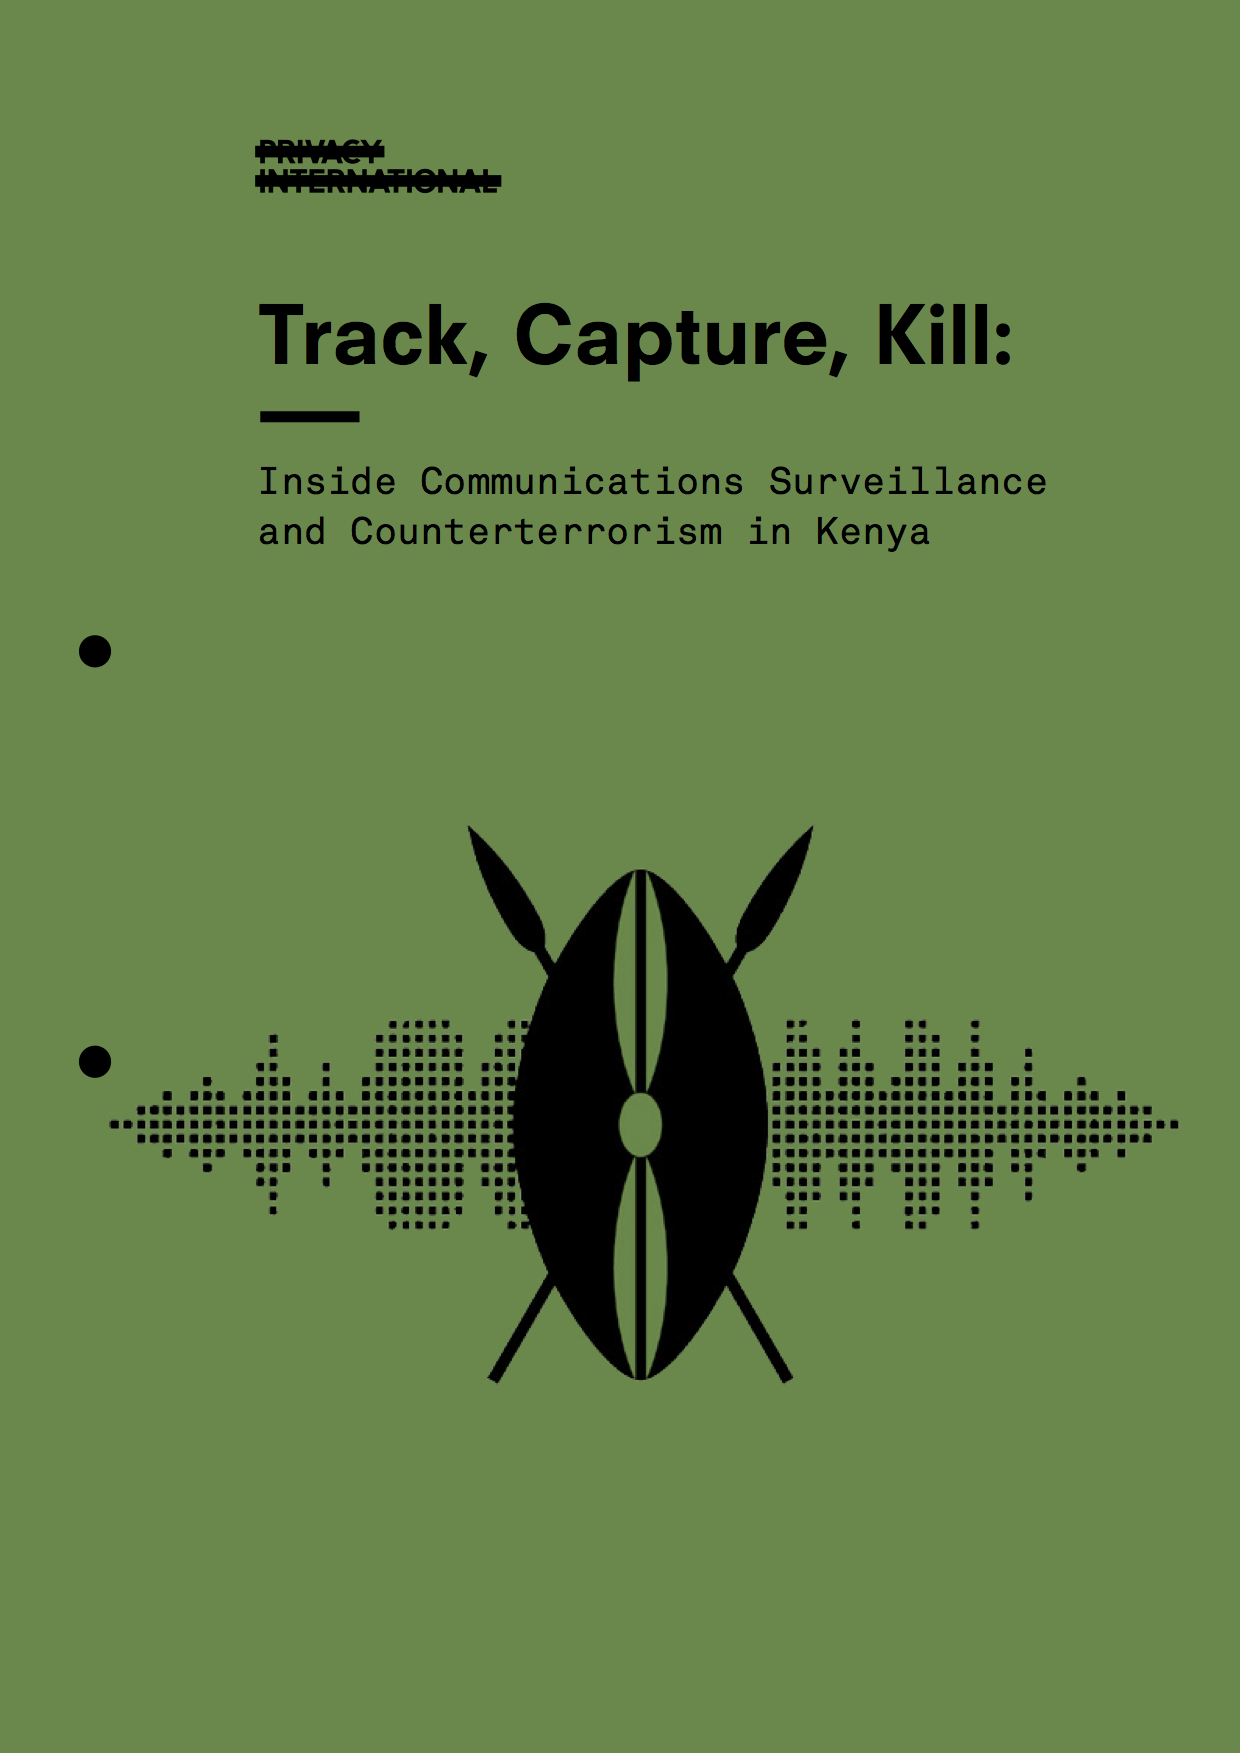 Track, Capture, Kill: Inside Communications Surveillance and Counterterrorism In Kenya